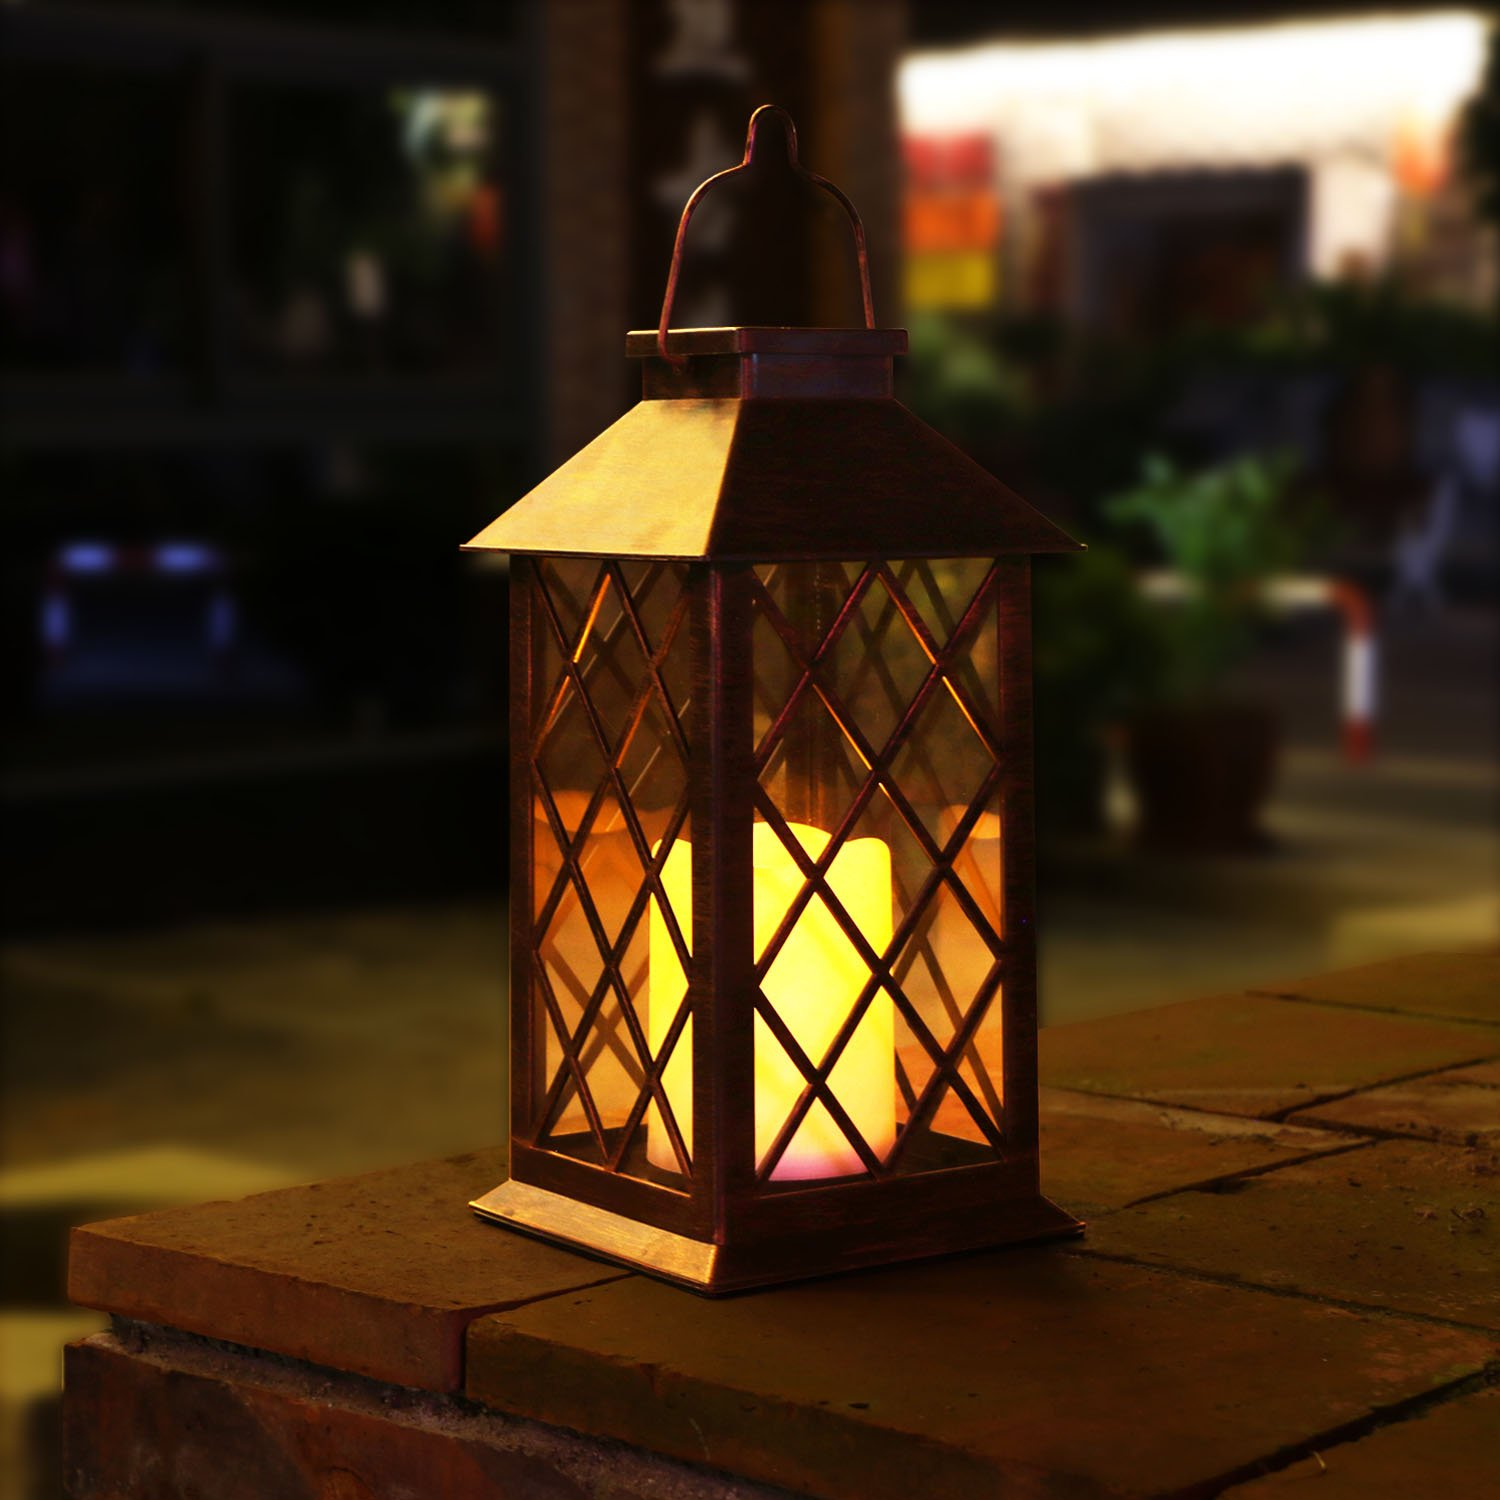 TAKE ME Solar Lantern,Outdoor Garden Hanging Lantern-Waterproof LED Flickering Flameless Candles Mission Lantern for Table,Outdoor,Party by TAKE ME